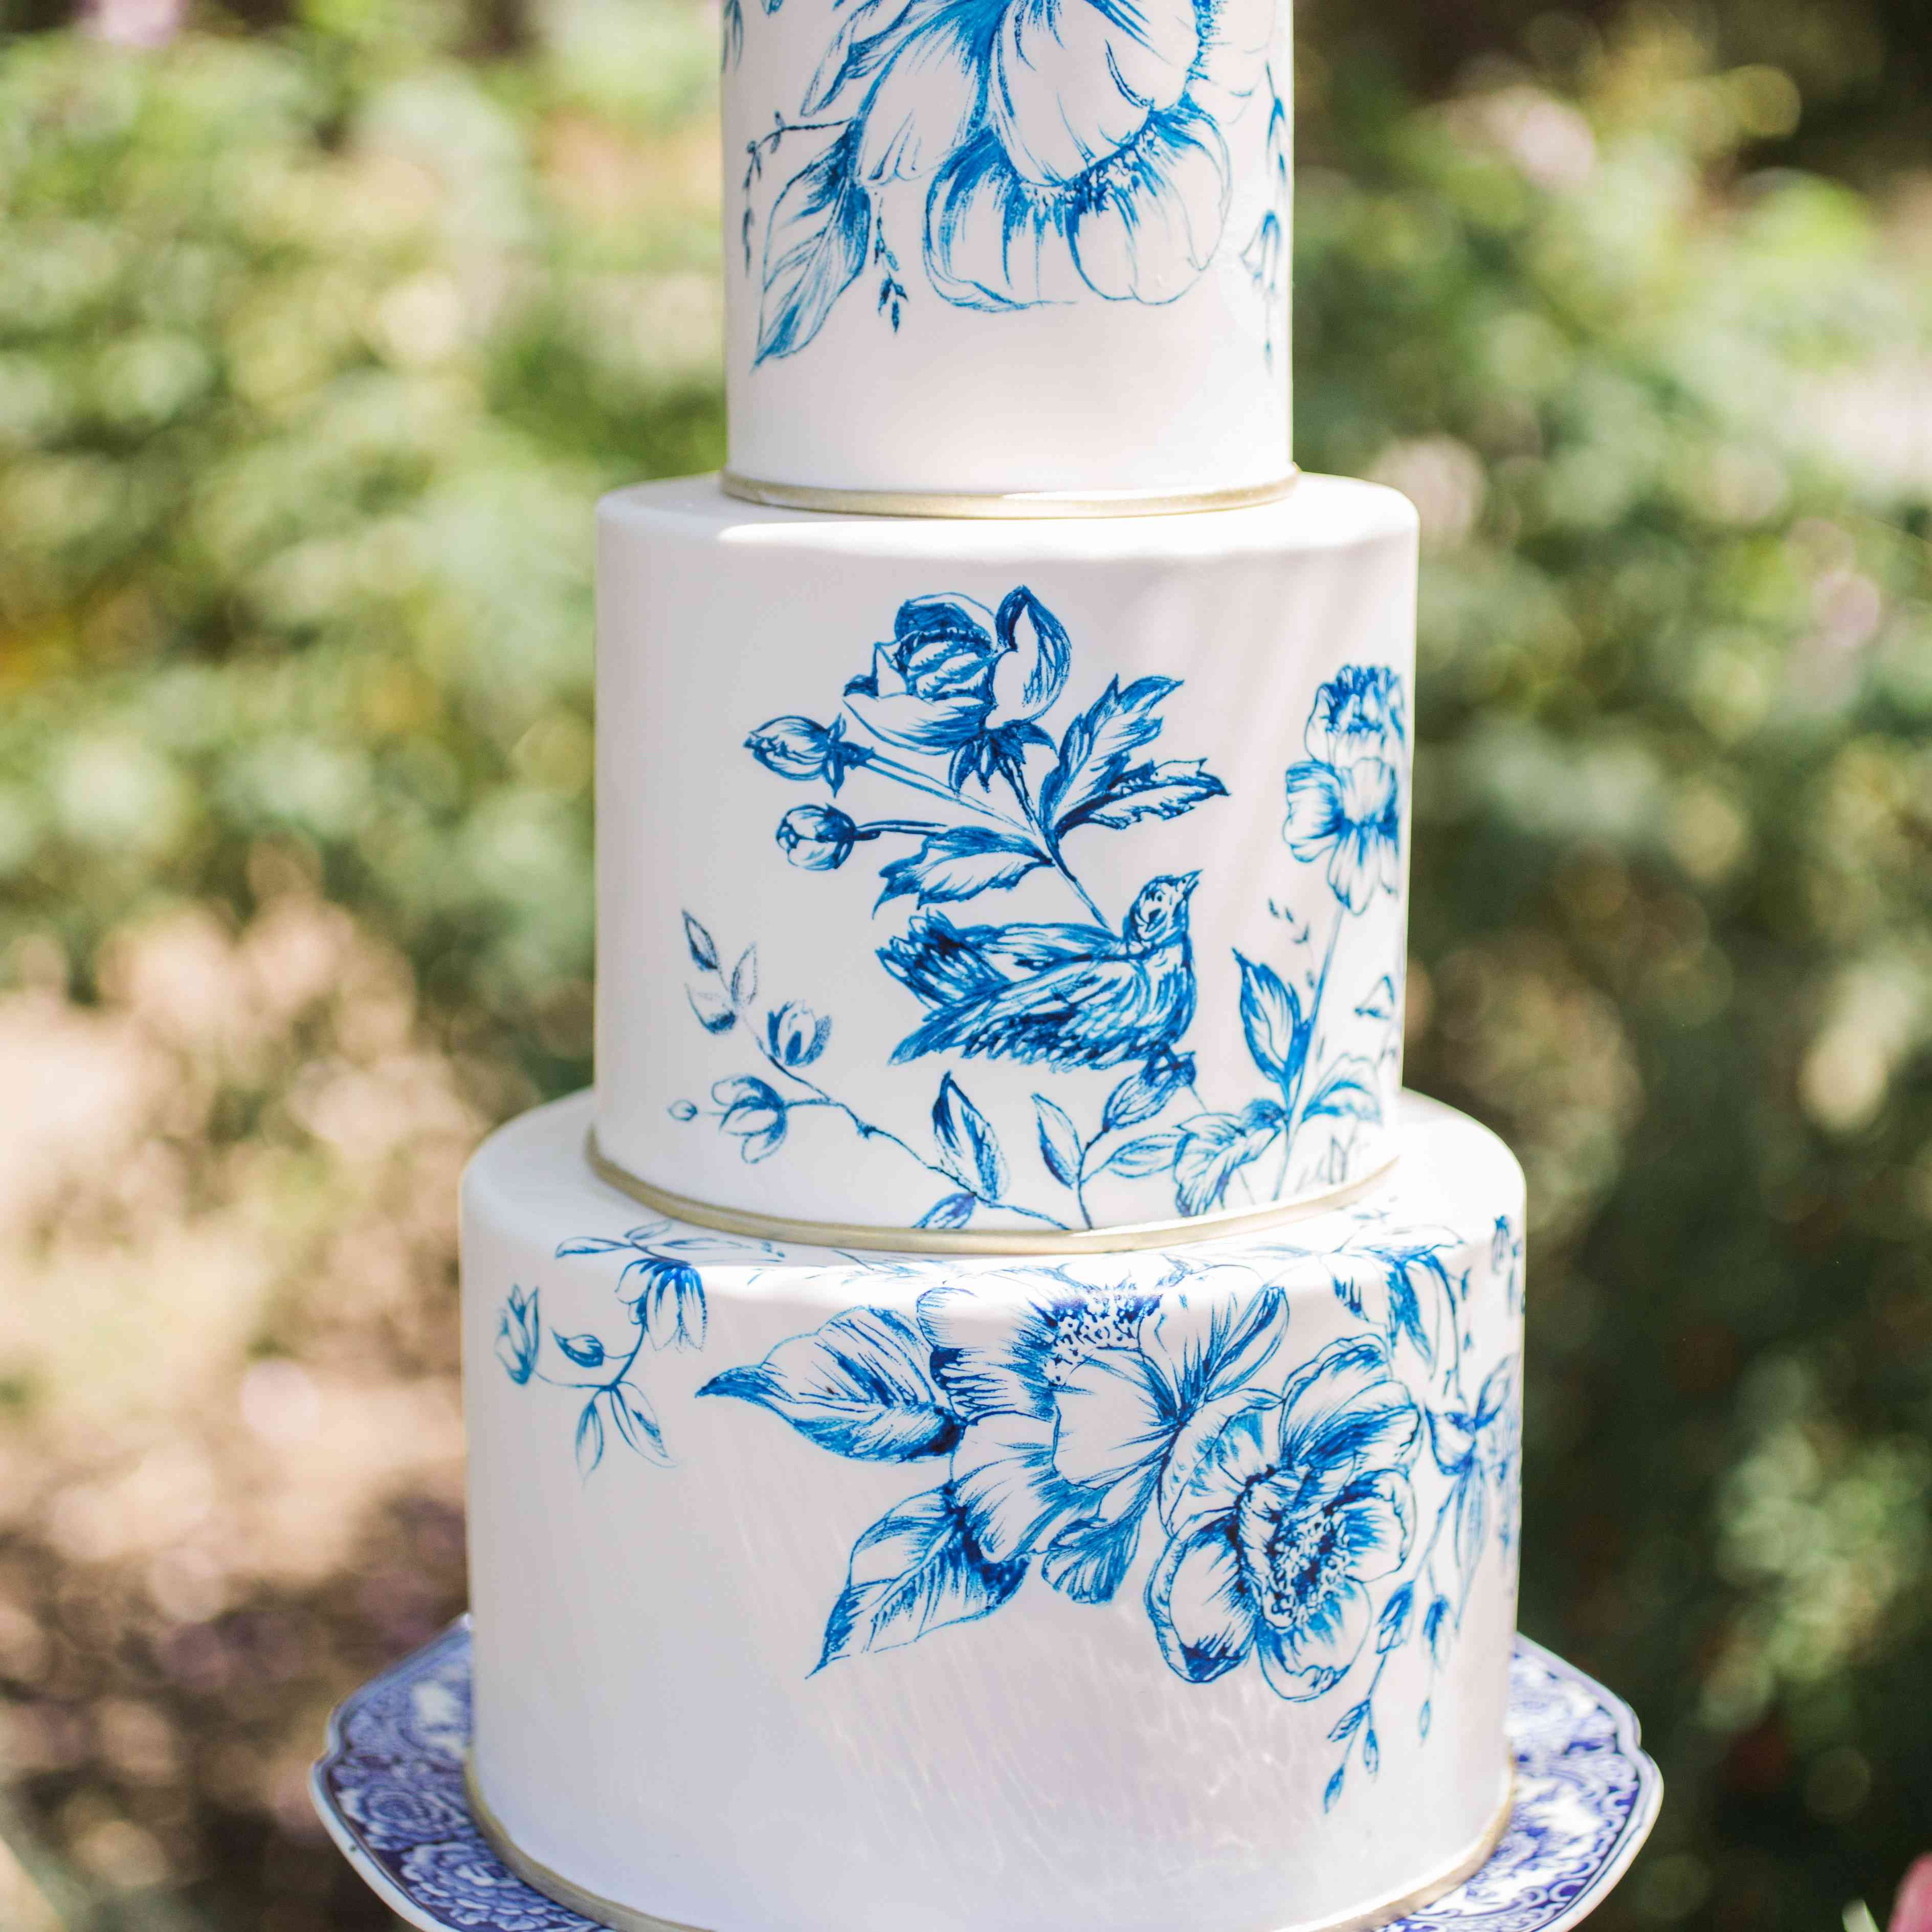 Wedding Cupcake Tier Ideas: 85 Of The Prettiest Floral Wedding Cakes